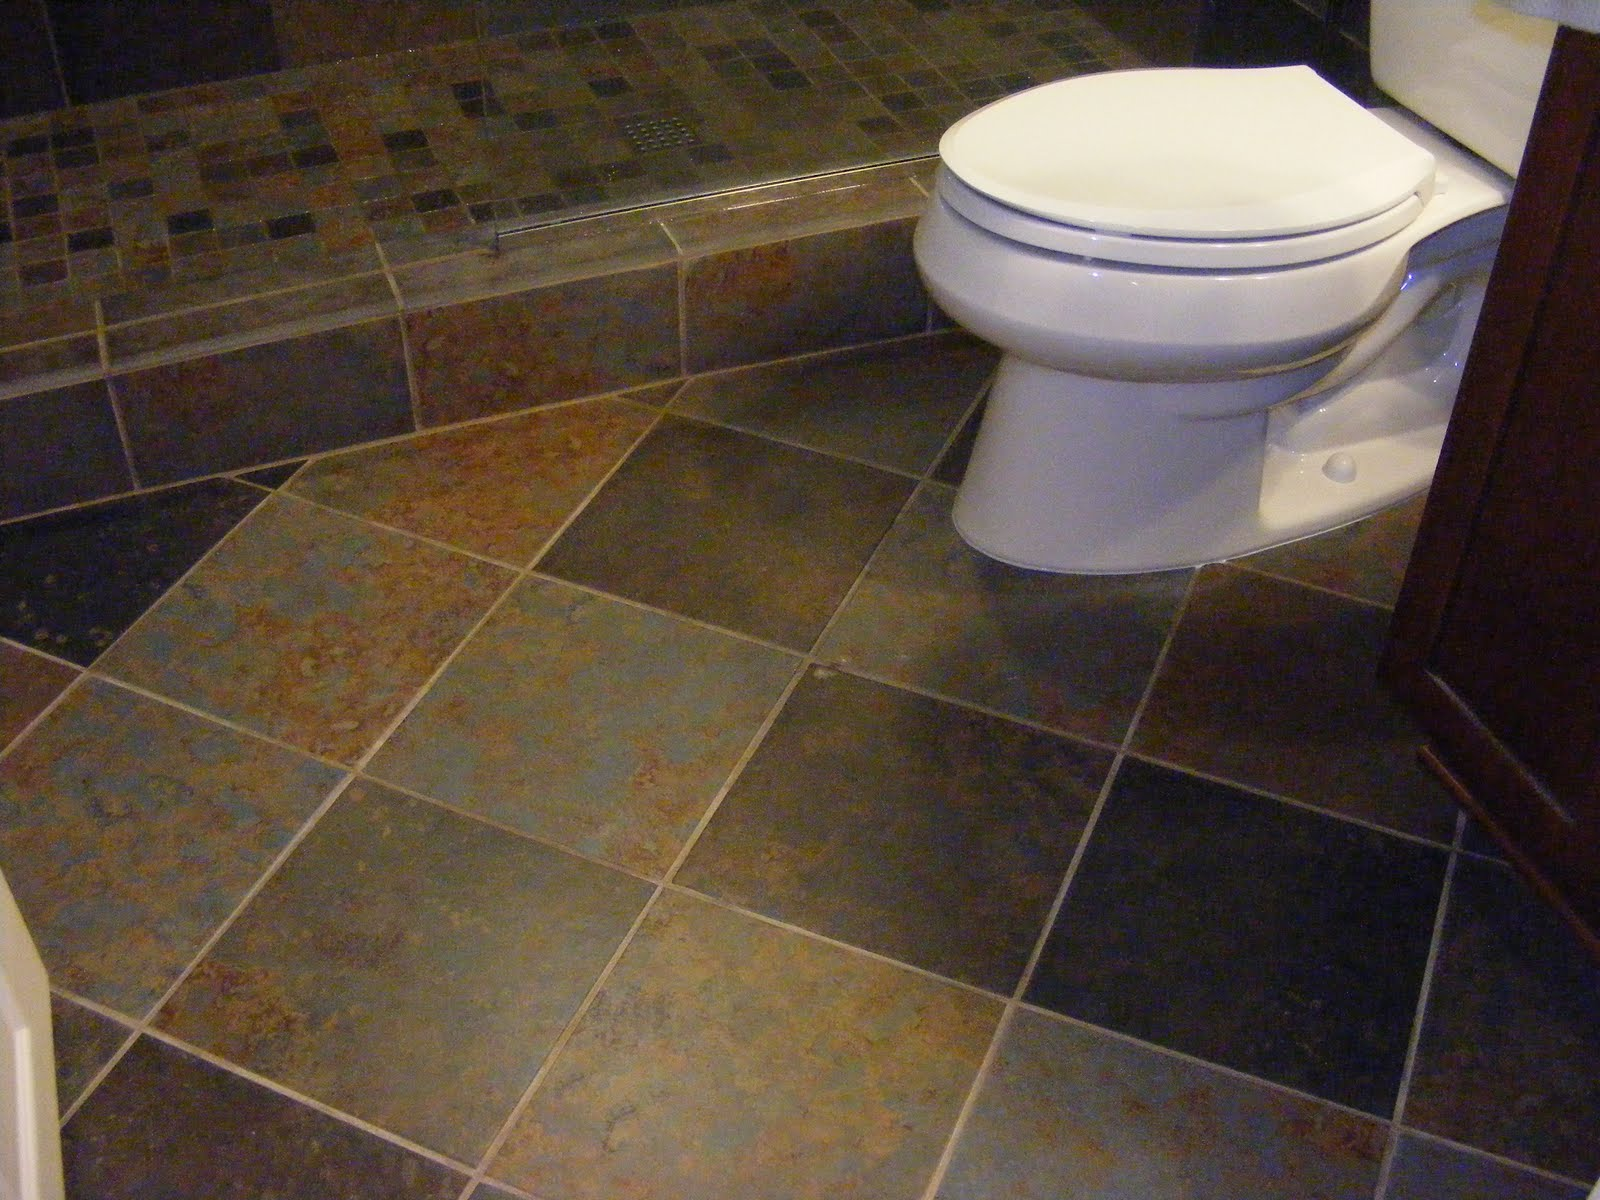 Gray Ceramic Flooring Tile White Toilet Shower Gallery